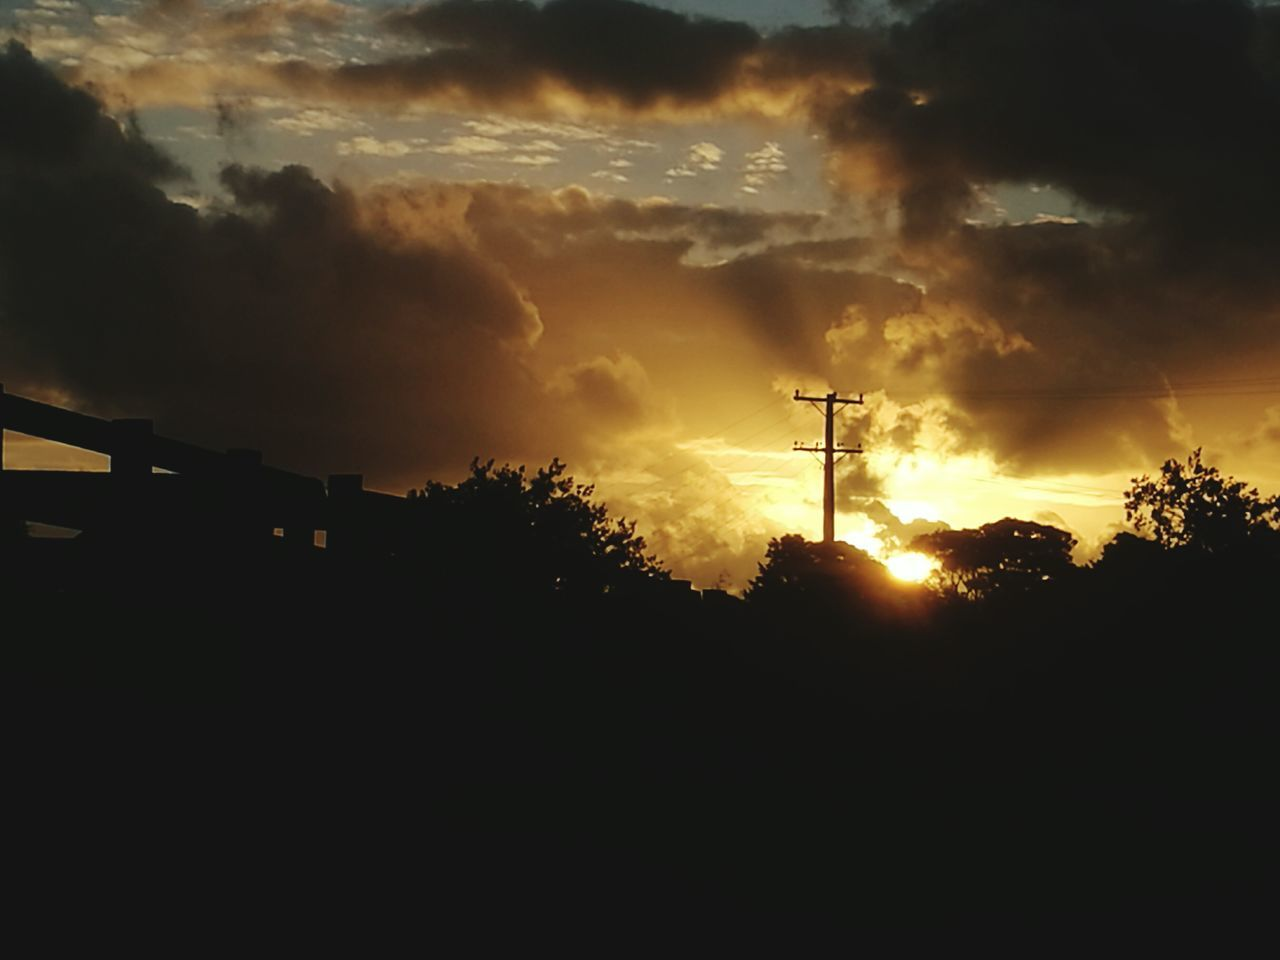 silhouette, sunset, sky, cloud - sky, low angle view, nature, no people, outdoors, beauty in nature, tree, day